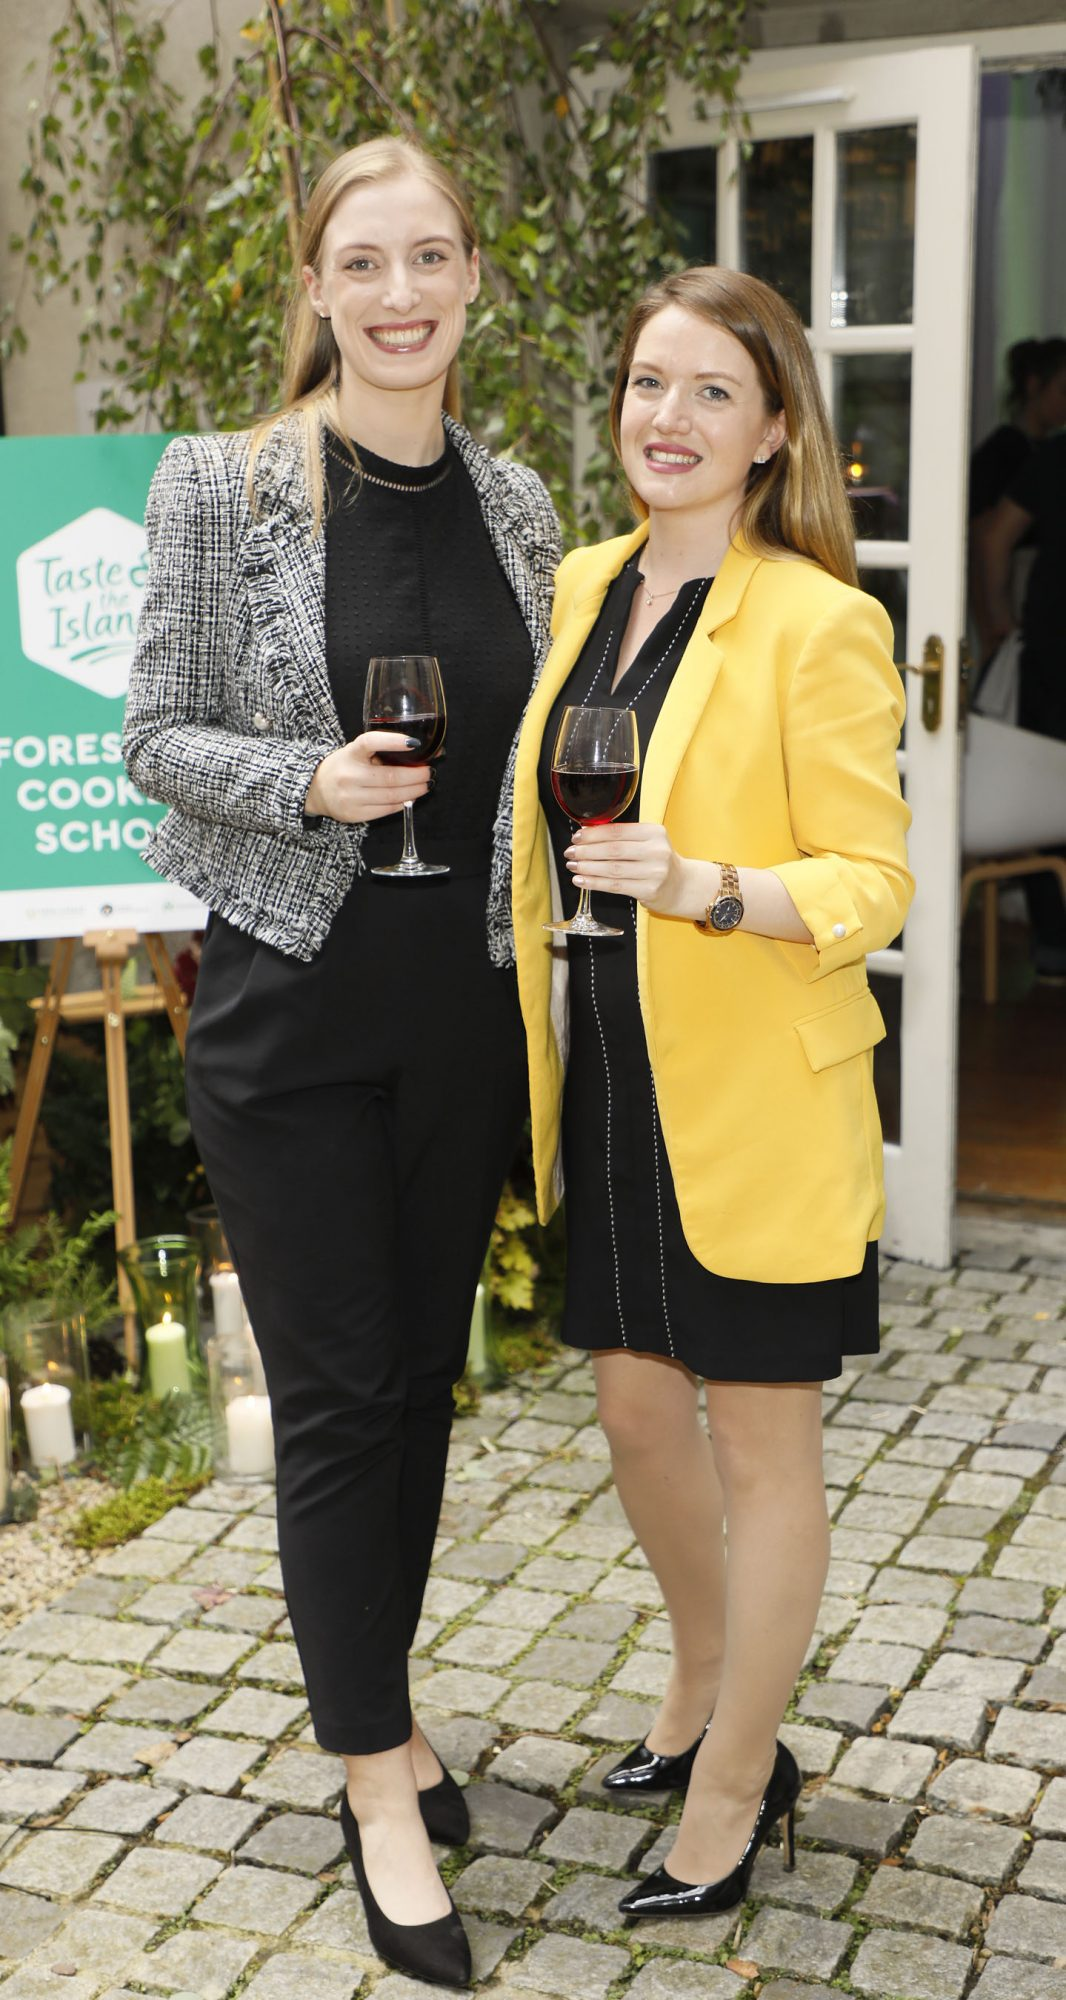 Avril Collins and Katy Walsh at the launch of Taste the Island, a 12 week celebration of Ireland's seasonal ingredients, adventurous tastes and bold experiences taking place this September, October and November. Photo: Kieran Harnett